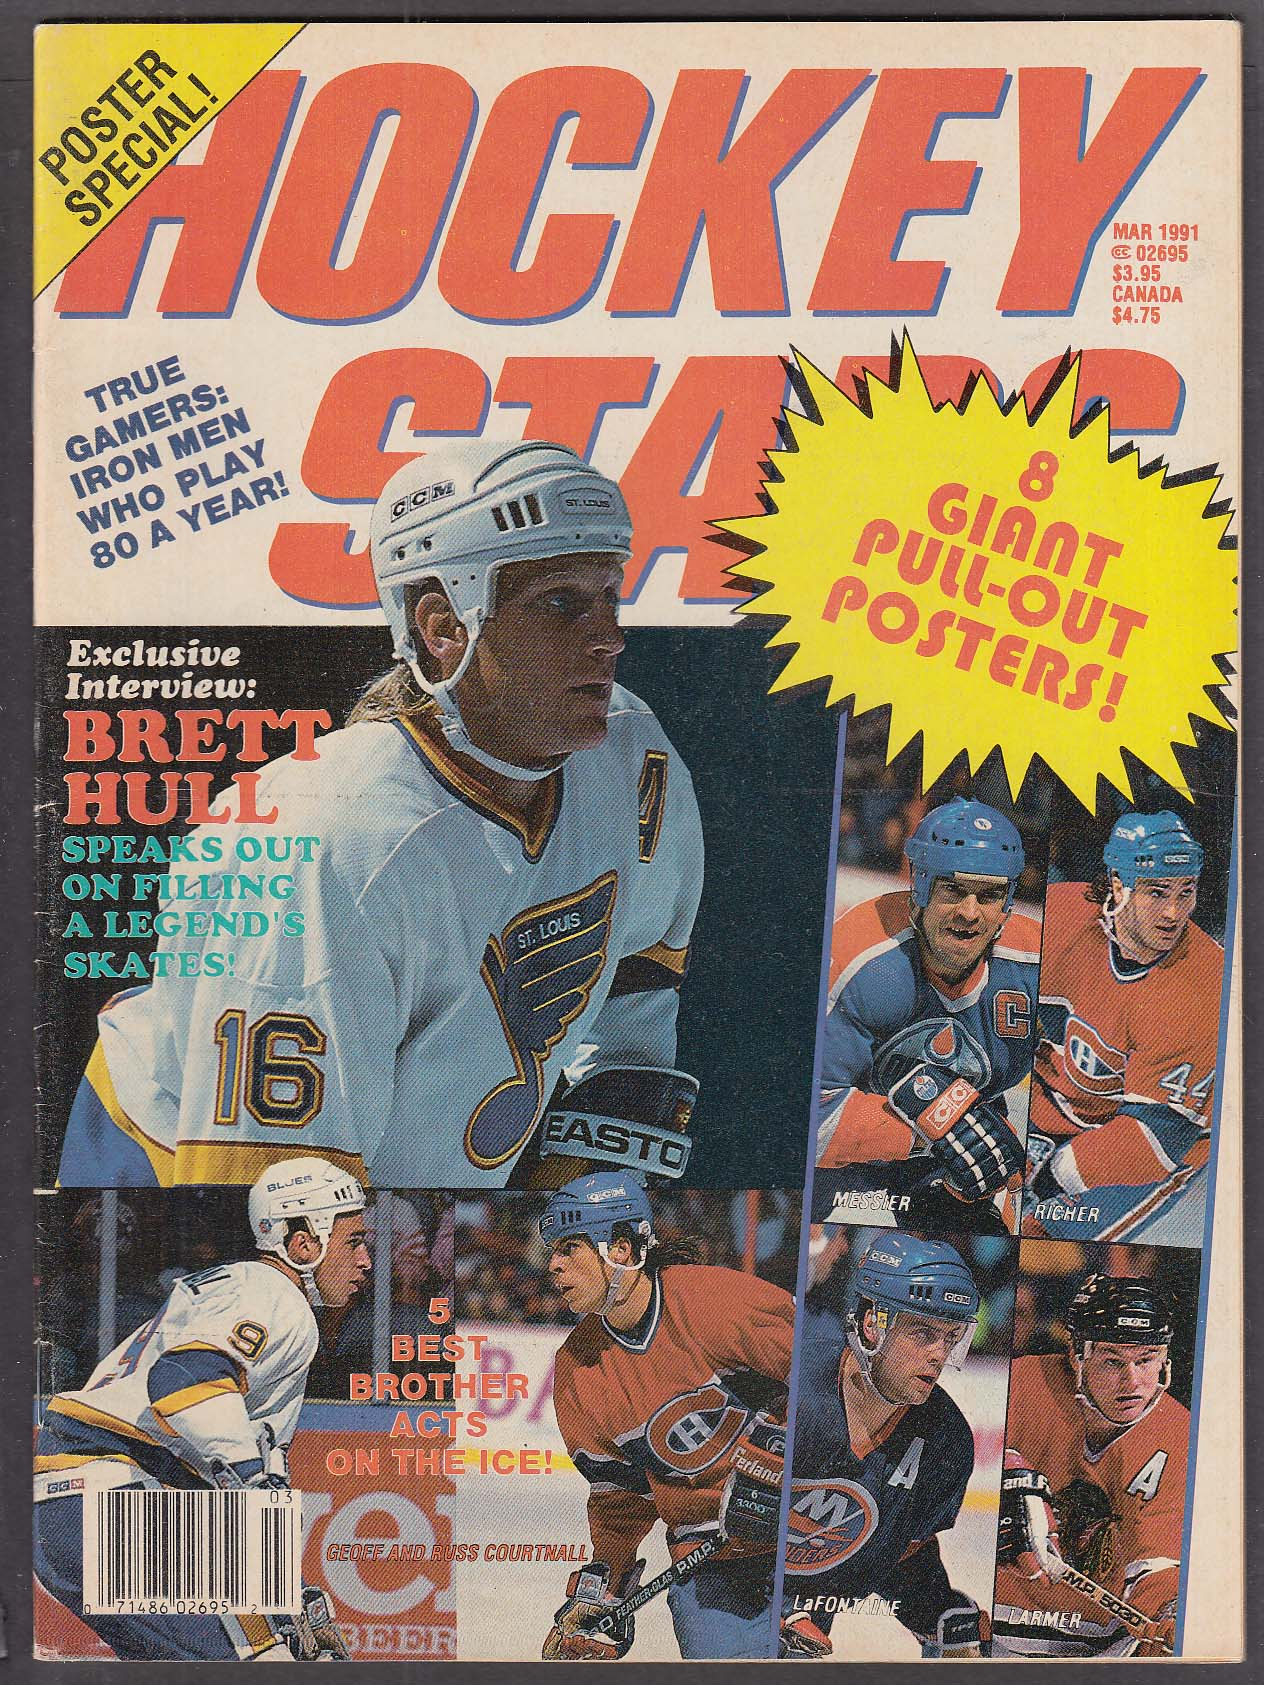 HOCKEY STARS Brett Hull interview 3 1991